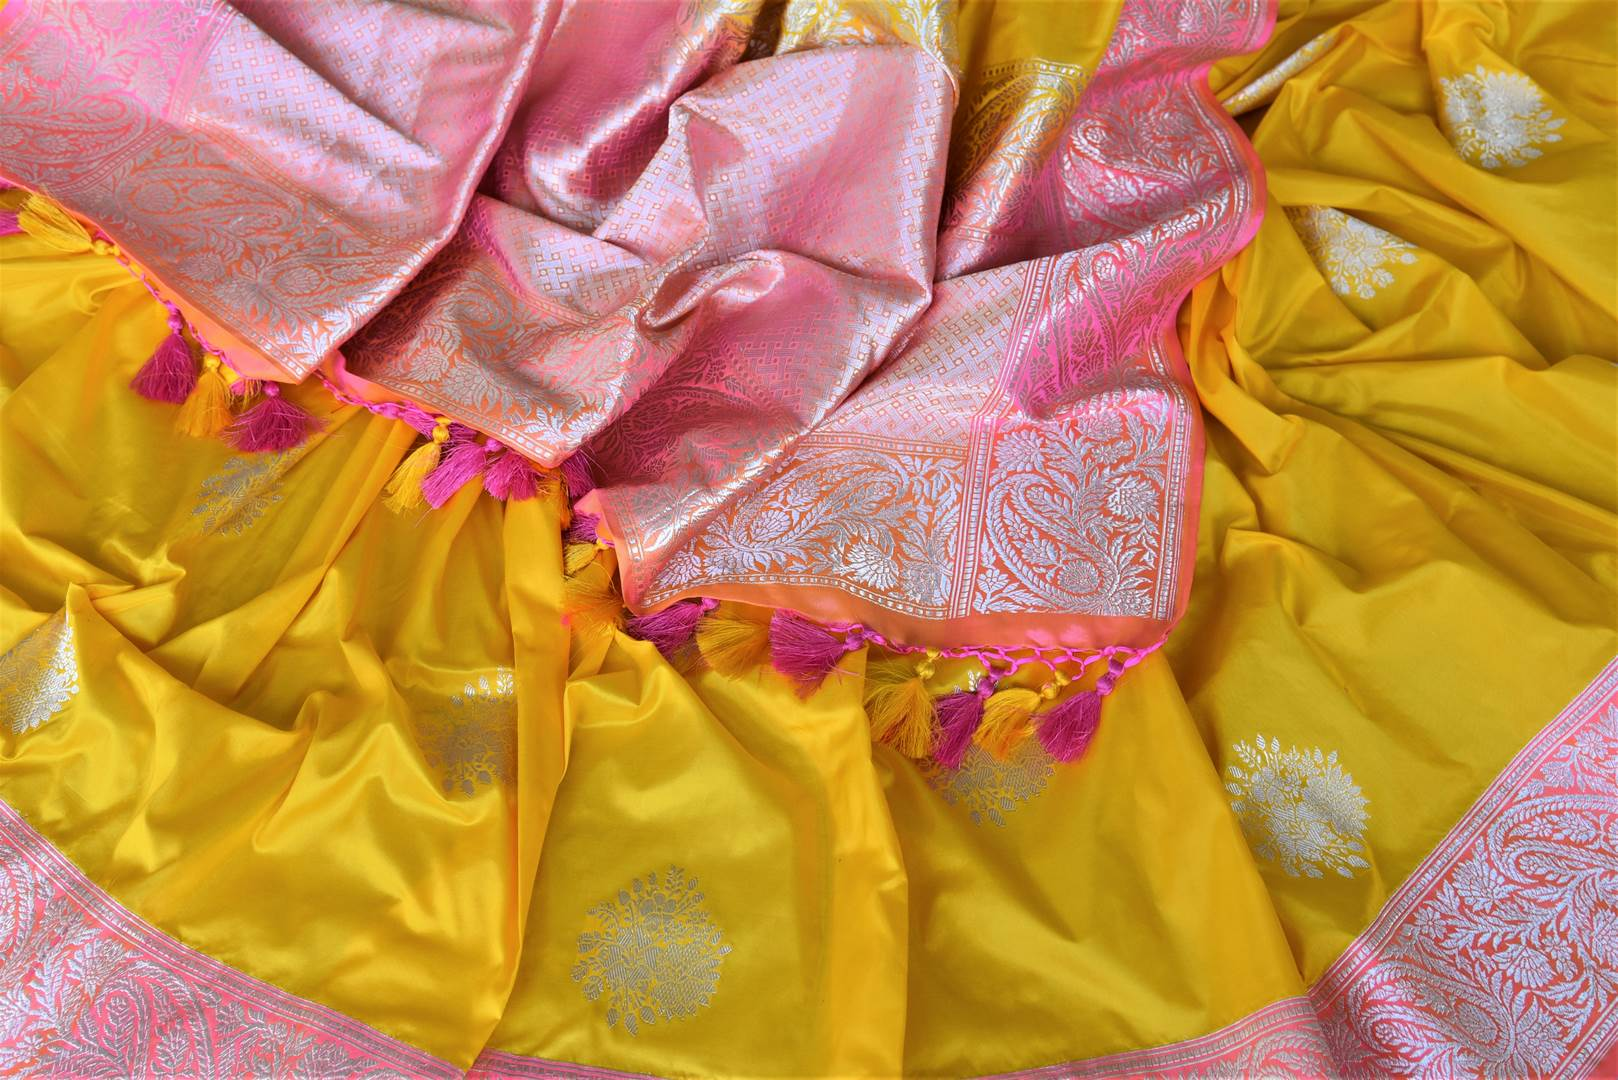 Buy charming yellow Banarasi silk saree online in USA with silver zari work on pink border. For Indian women in USA, Pure Elegance Indian fashion store brings an exquisite collection Banarasi sarees, Banarasi silk sarees, tussar sarees, zari work sarees, pure silk sarees all under one roof. Shop online now.-details